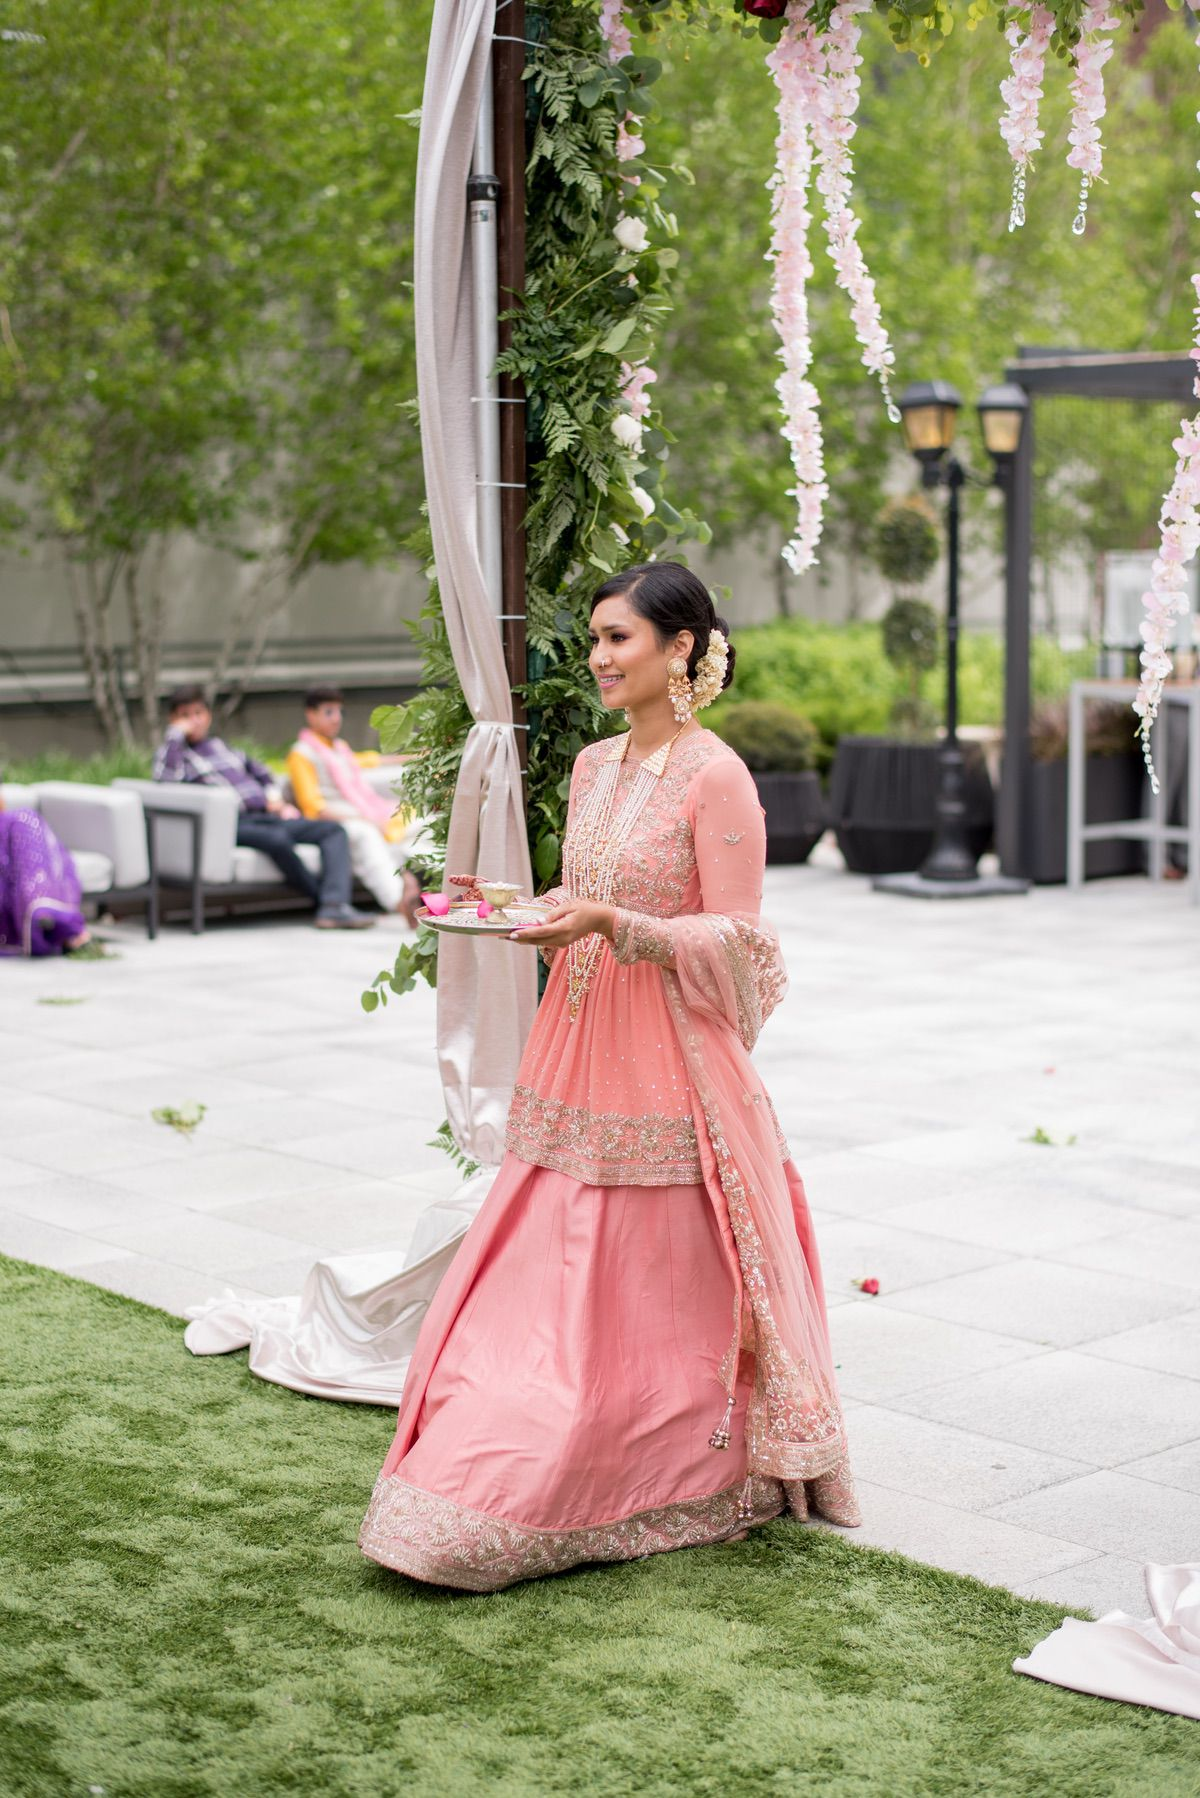 Le_Cape_Weddings_-_Serena_-_Chicago_South_Asian_Wedding_-_Ceremony_--30.jpg